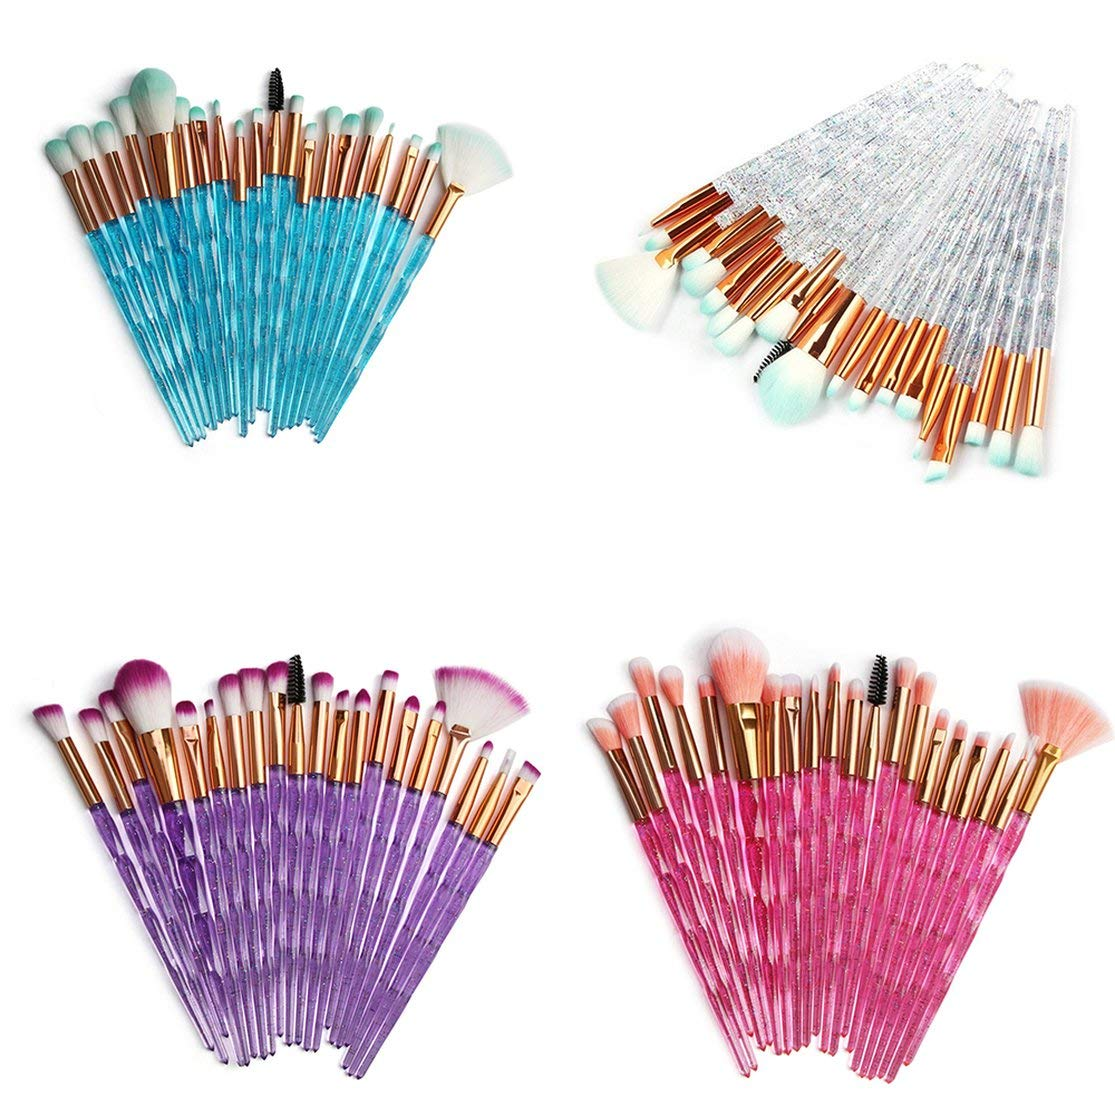 LouiseEvel215 Makeup Brushes Powder Concealers Eye Shadows Makeup Beauty Silk And Soft Tool Makeup Dense Shaped Flash Drill Eye Set Brush